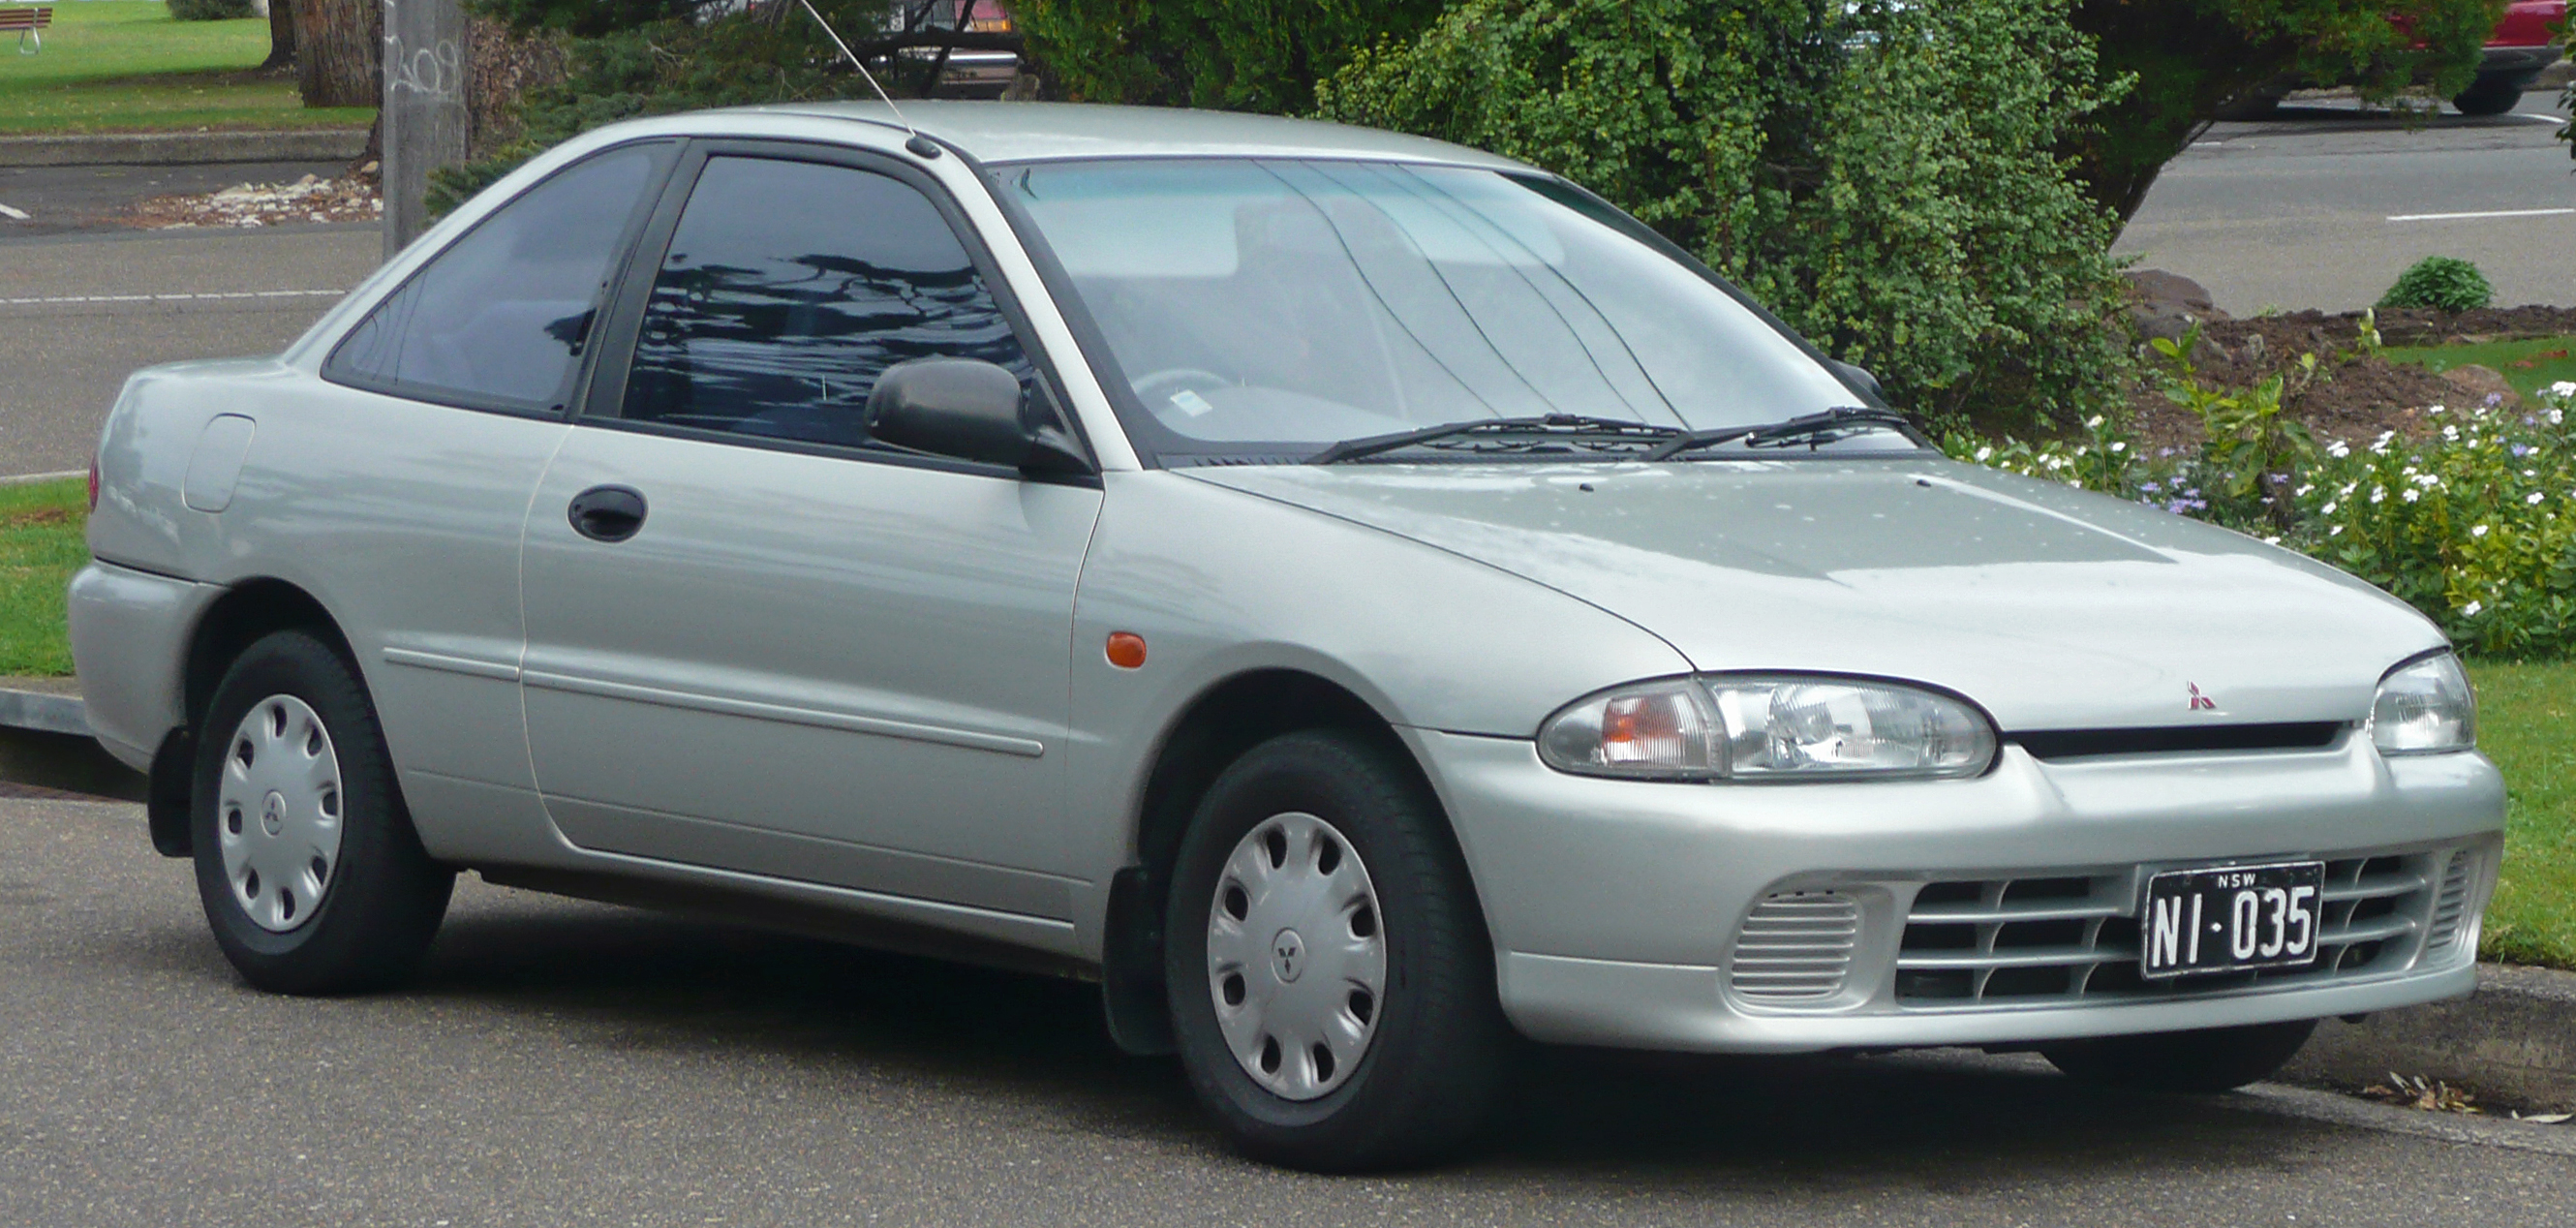 mitsubishi mirage (cjo) 1995 images #2